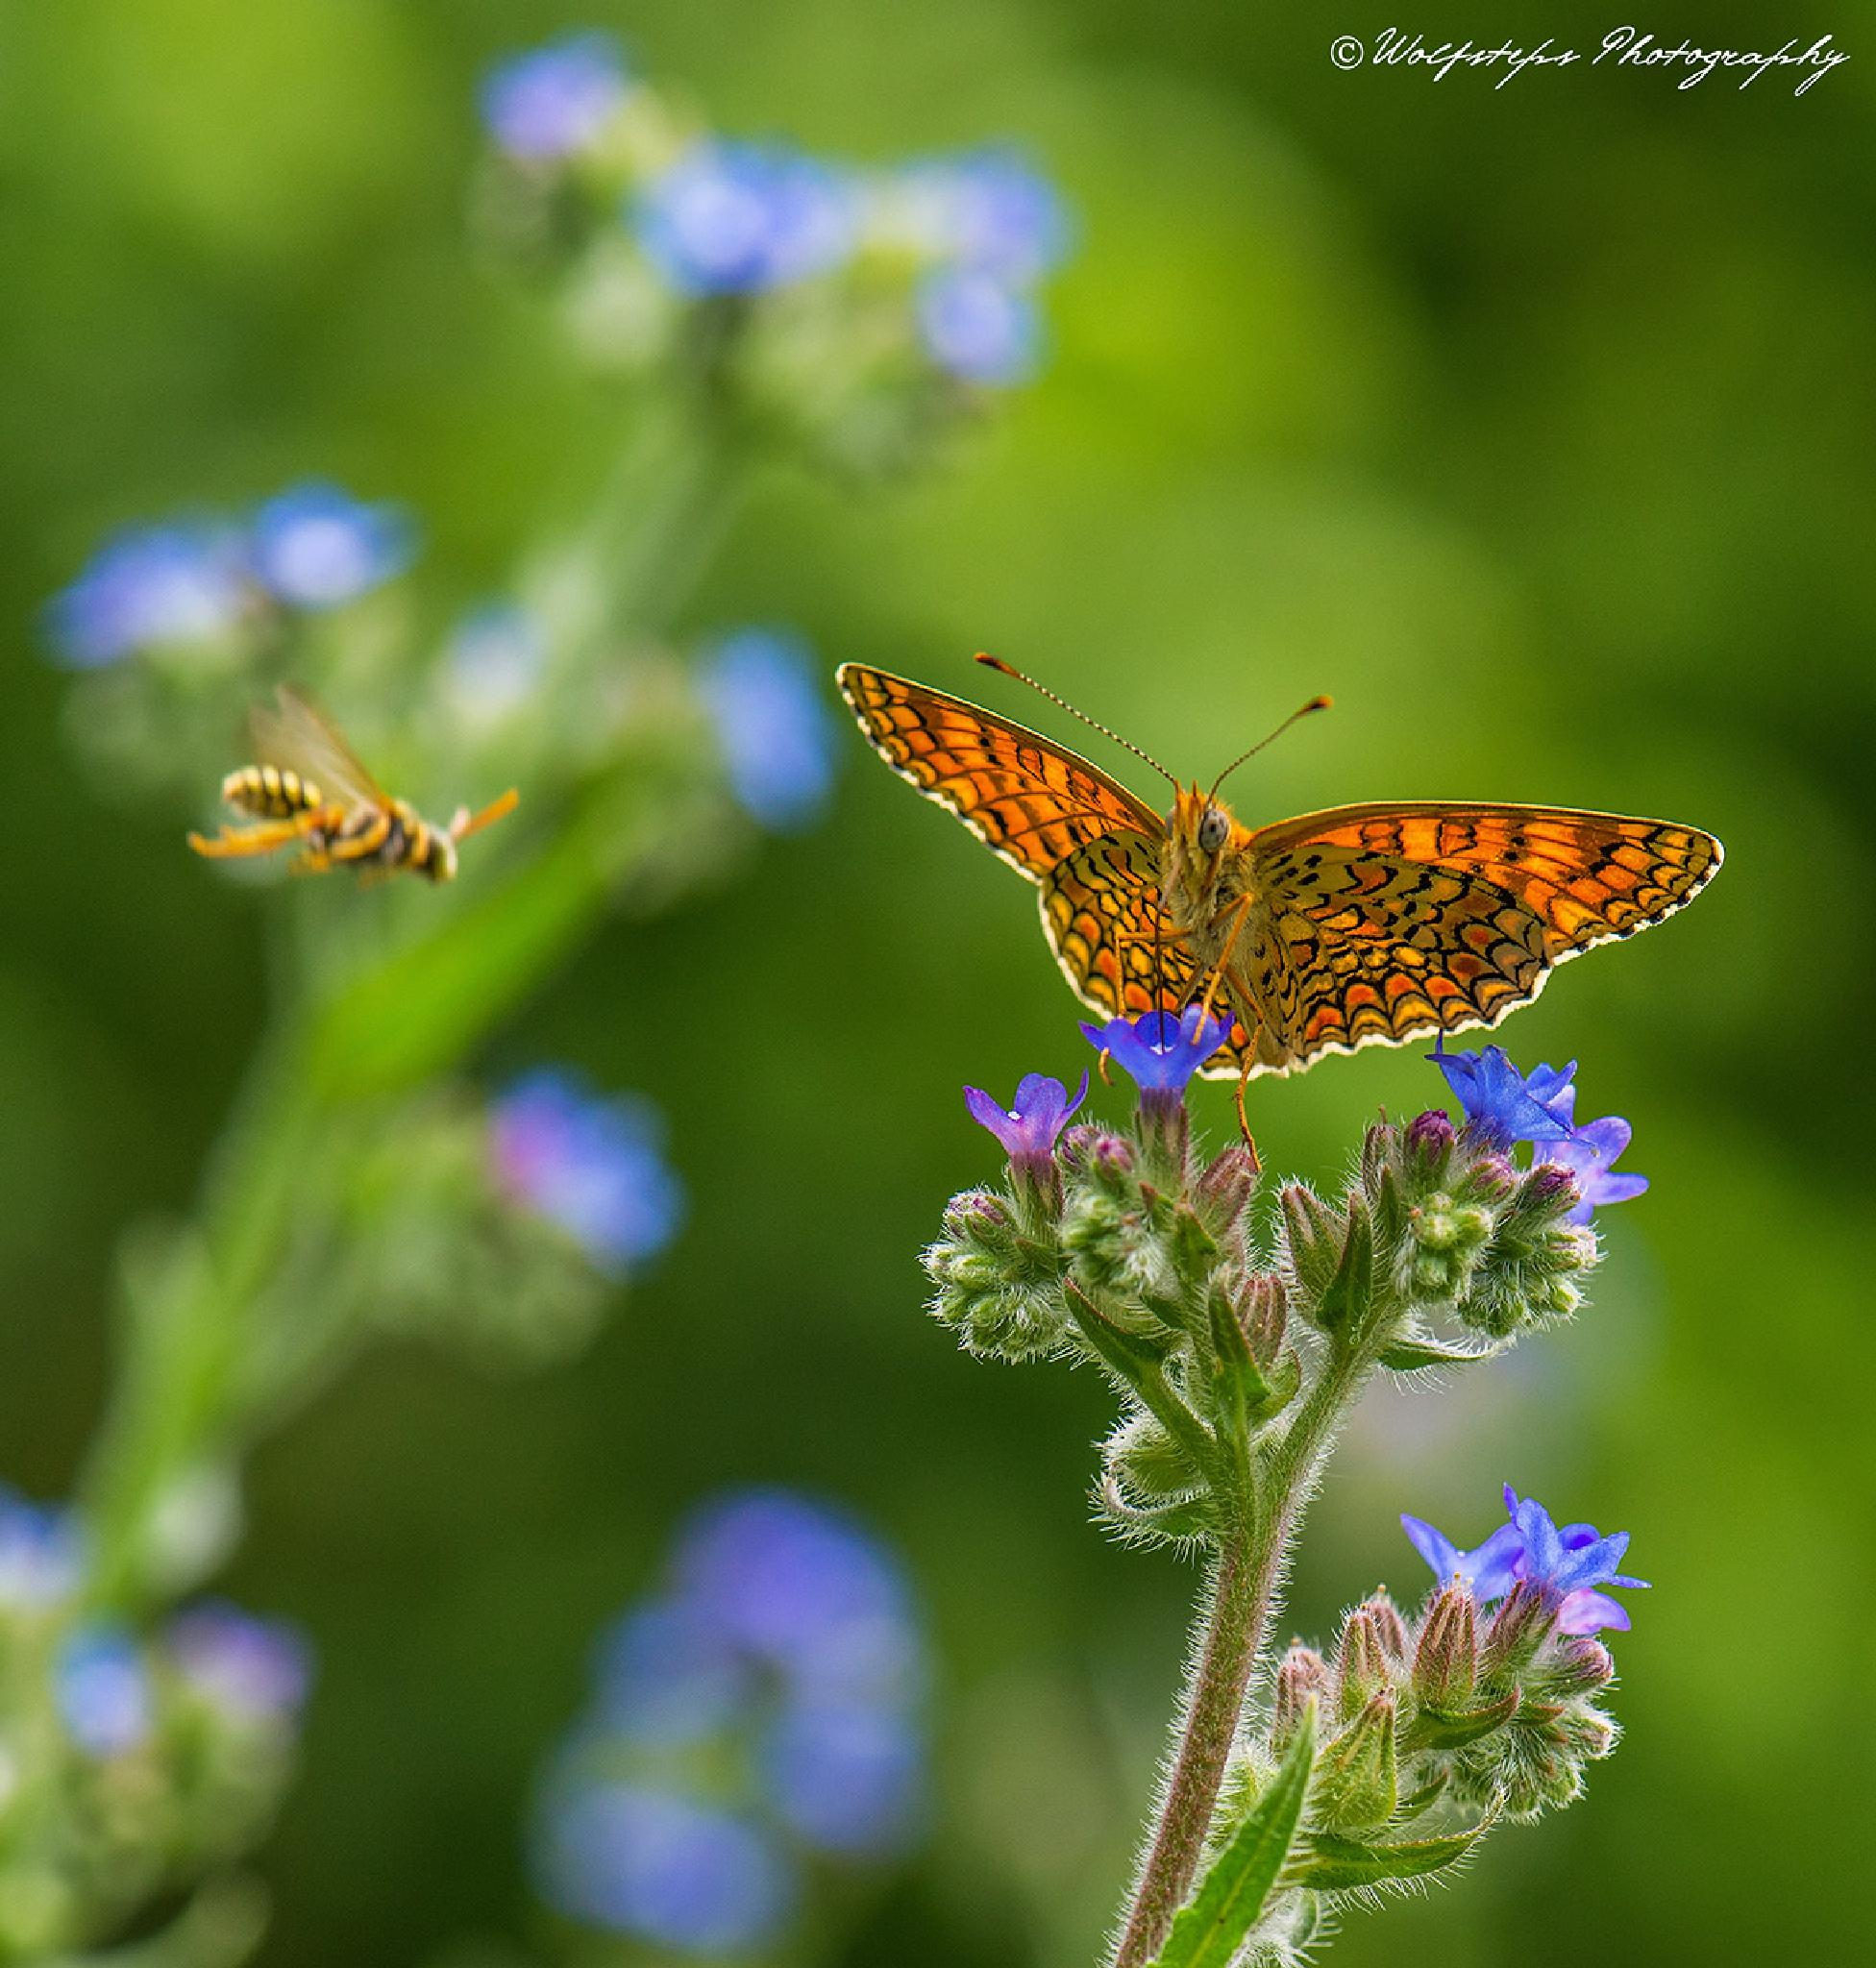 Butterfly and bee by WolfstepsPhotography